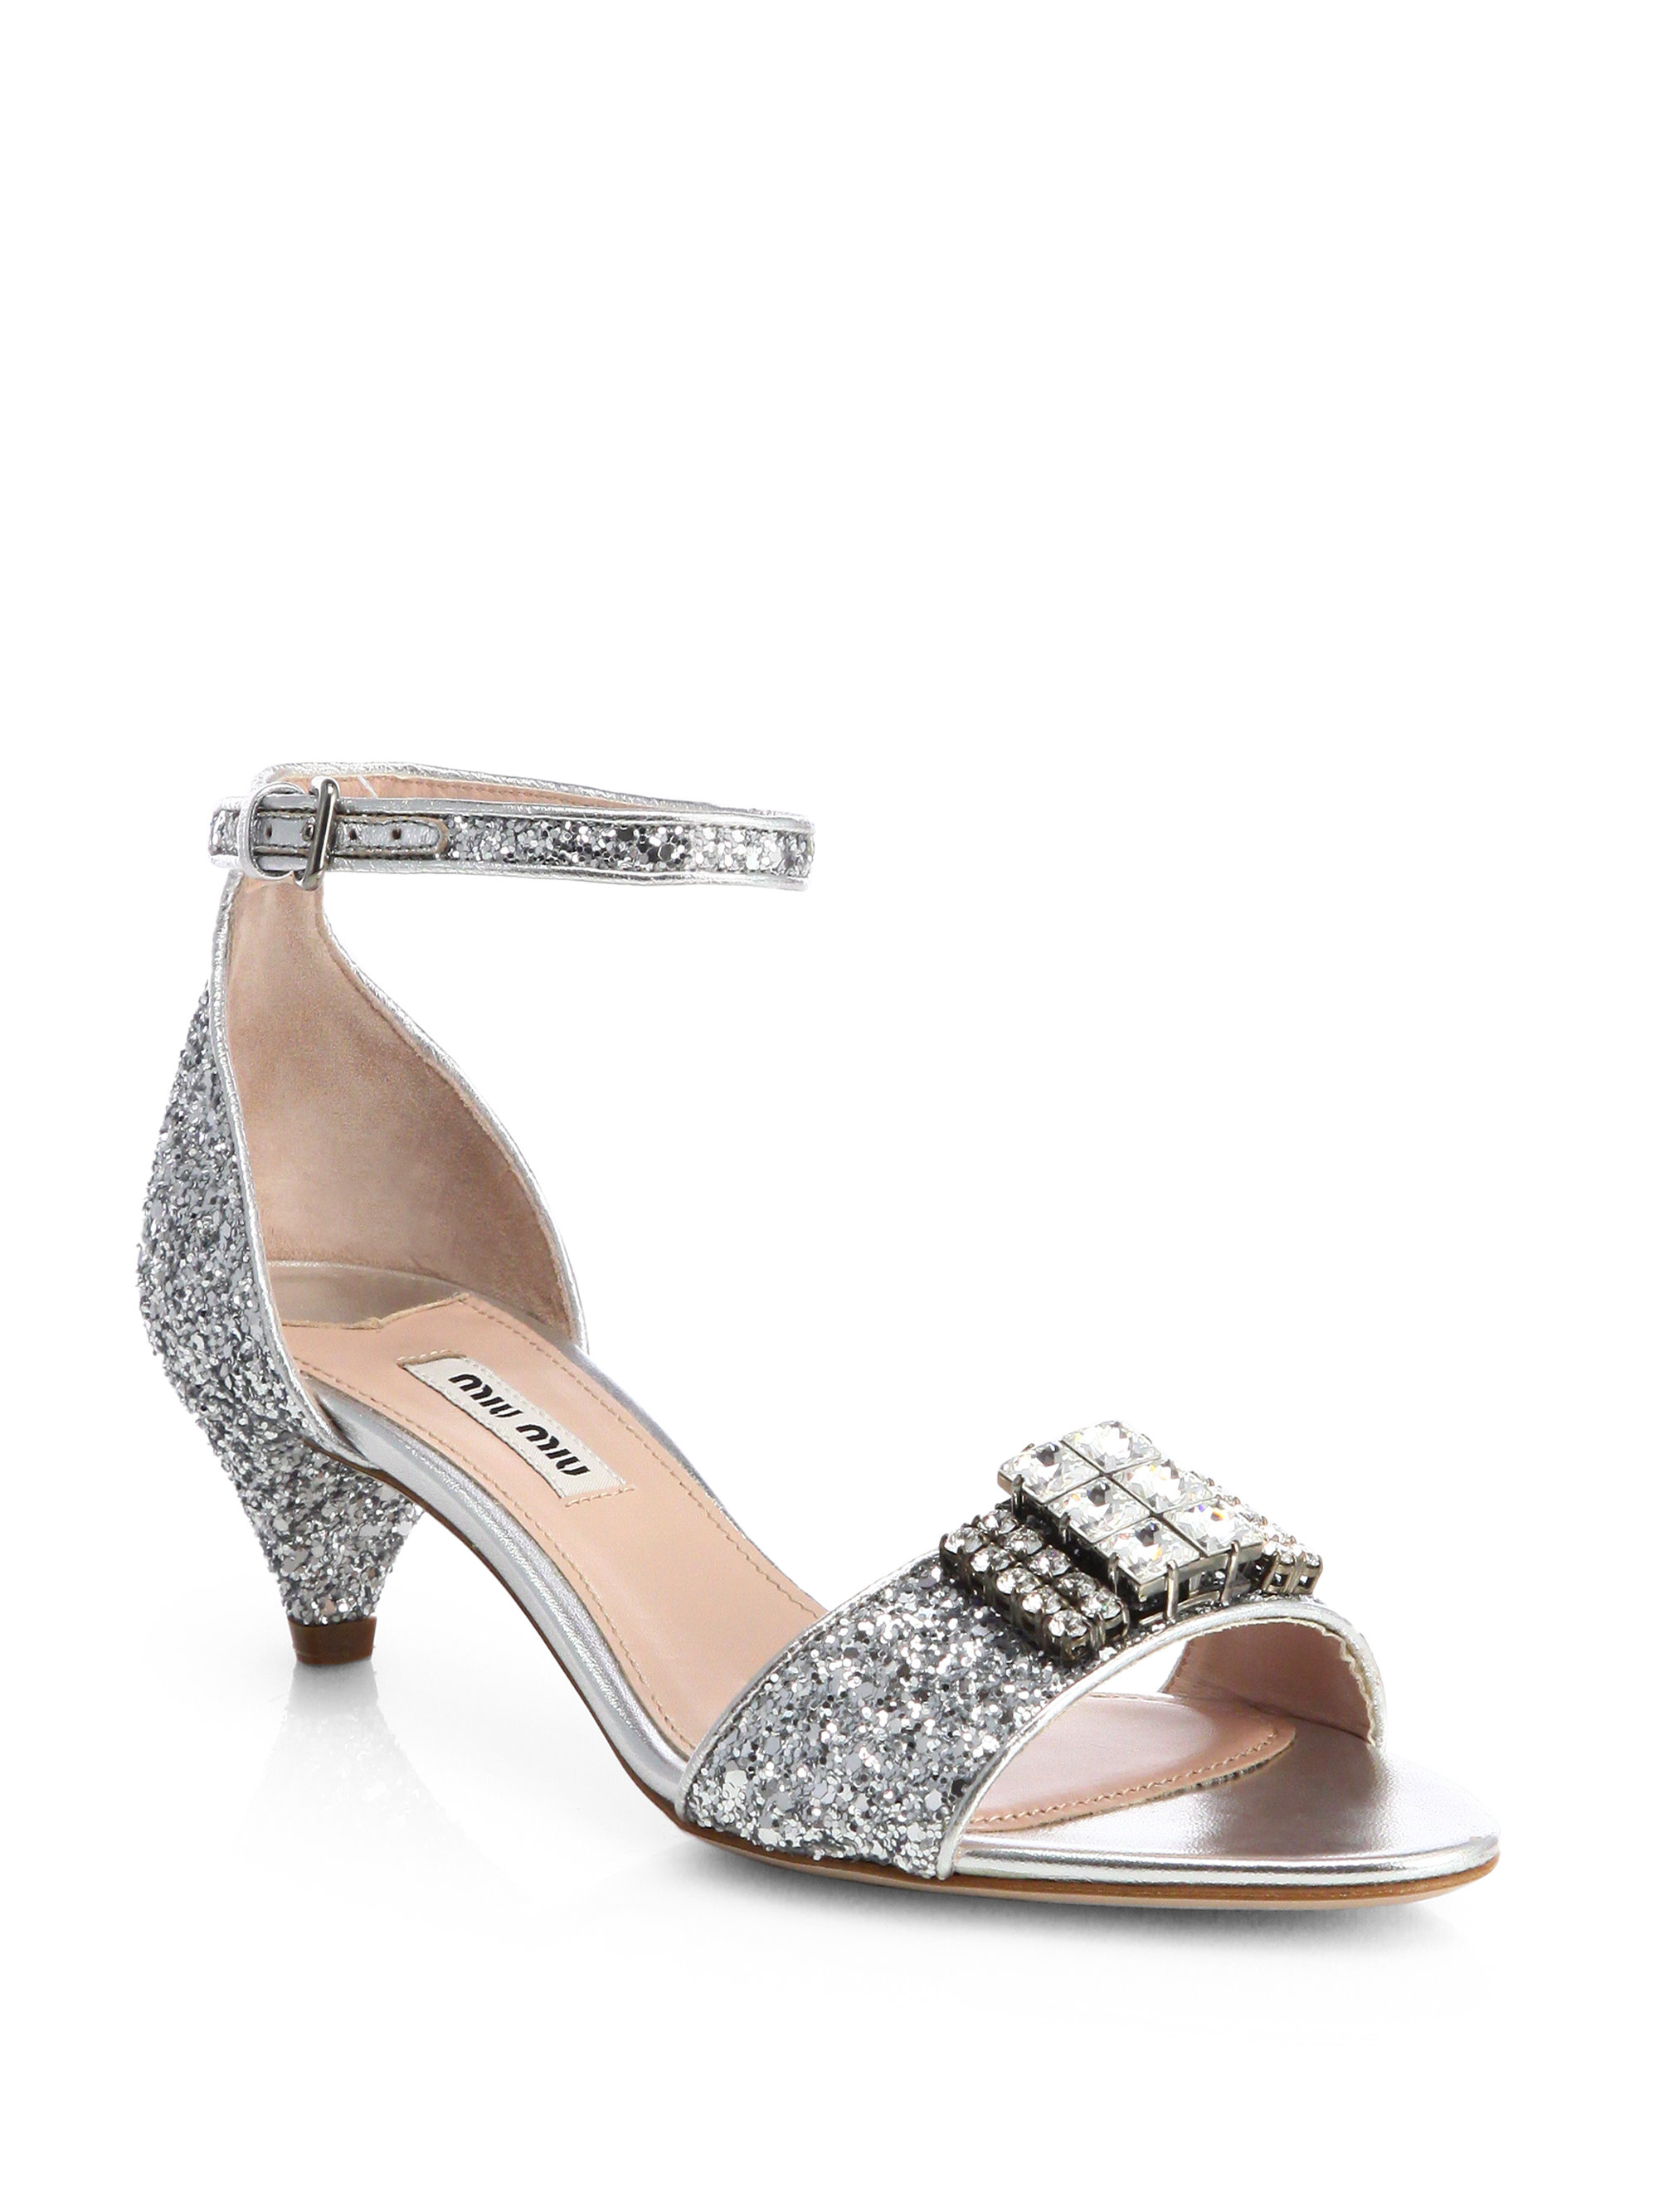 Miu miu Jeweled Glitter Kittenheel Sandals in Metallic | Lyst